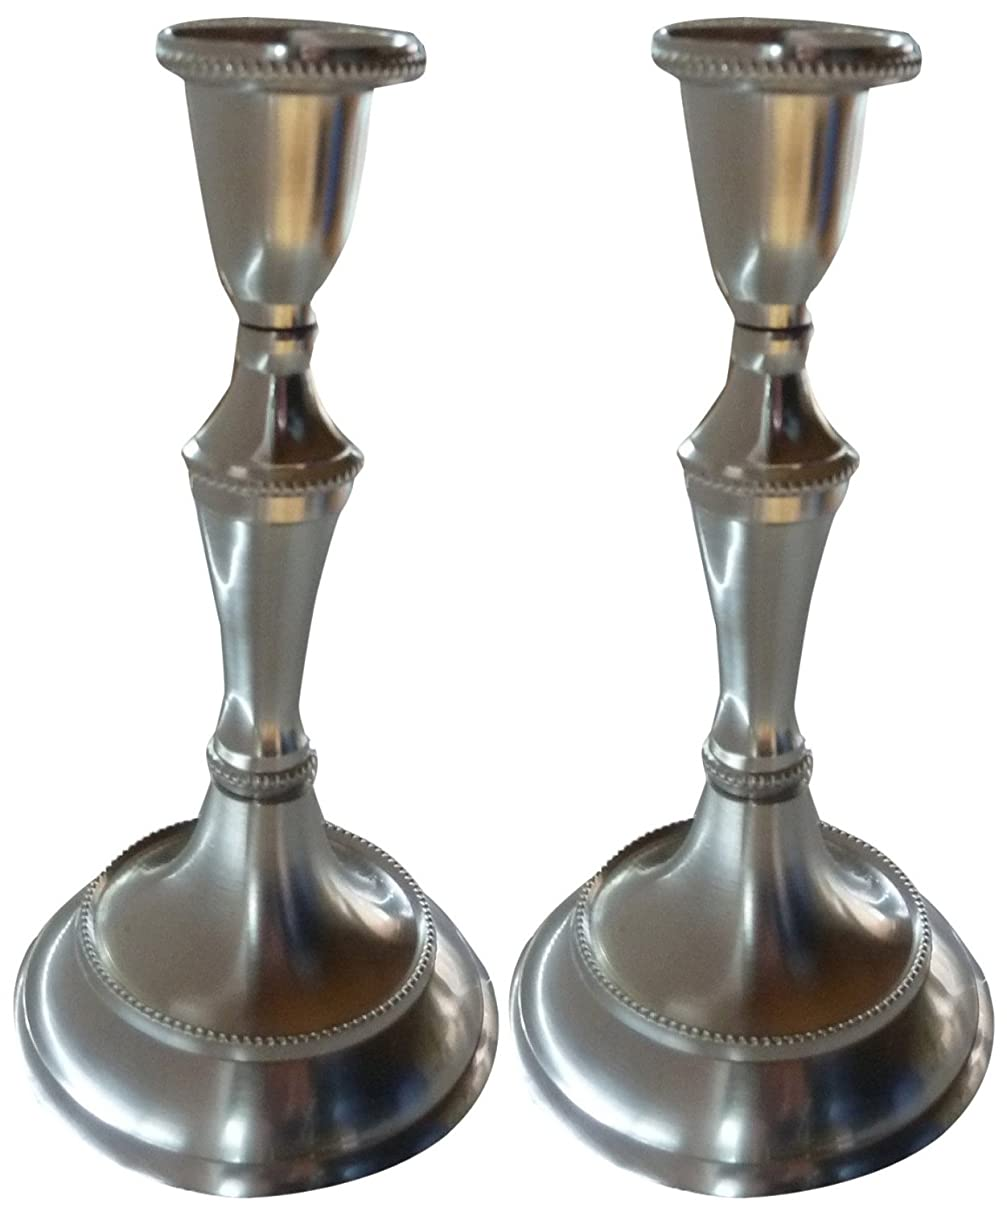 Biedermann & Sons Taper Candle Holder, Set of 2, Pewter Finish, 6.5 Inches Tall